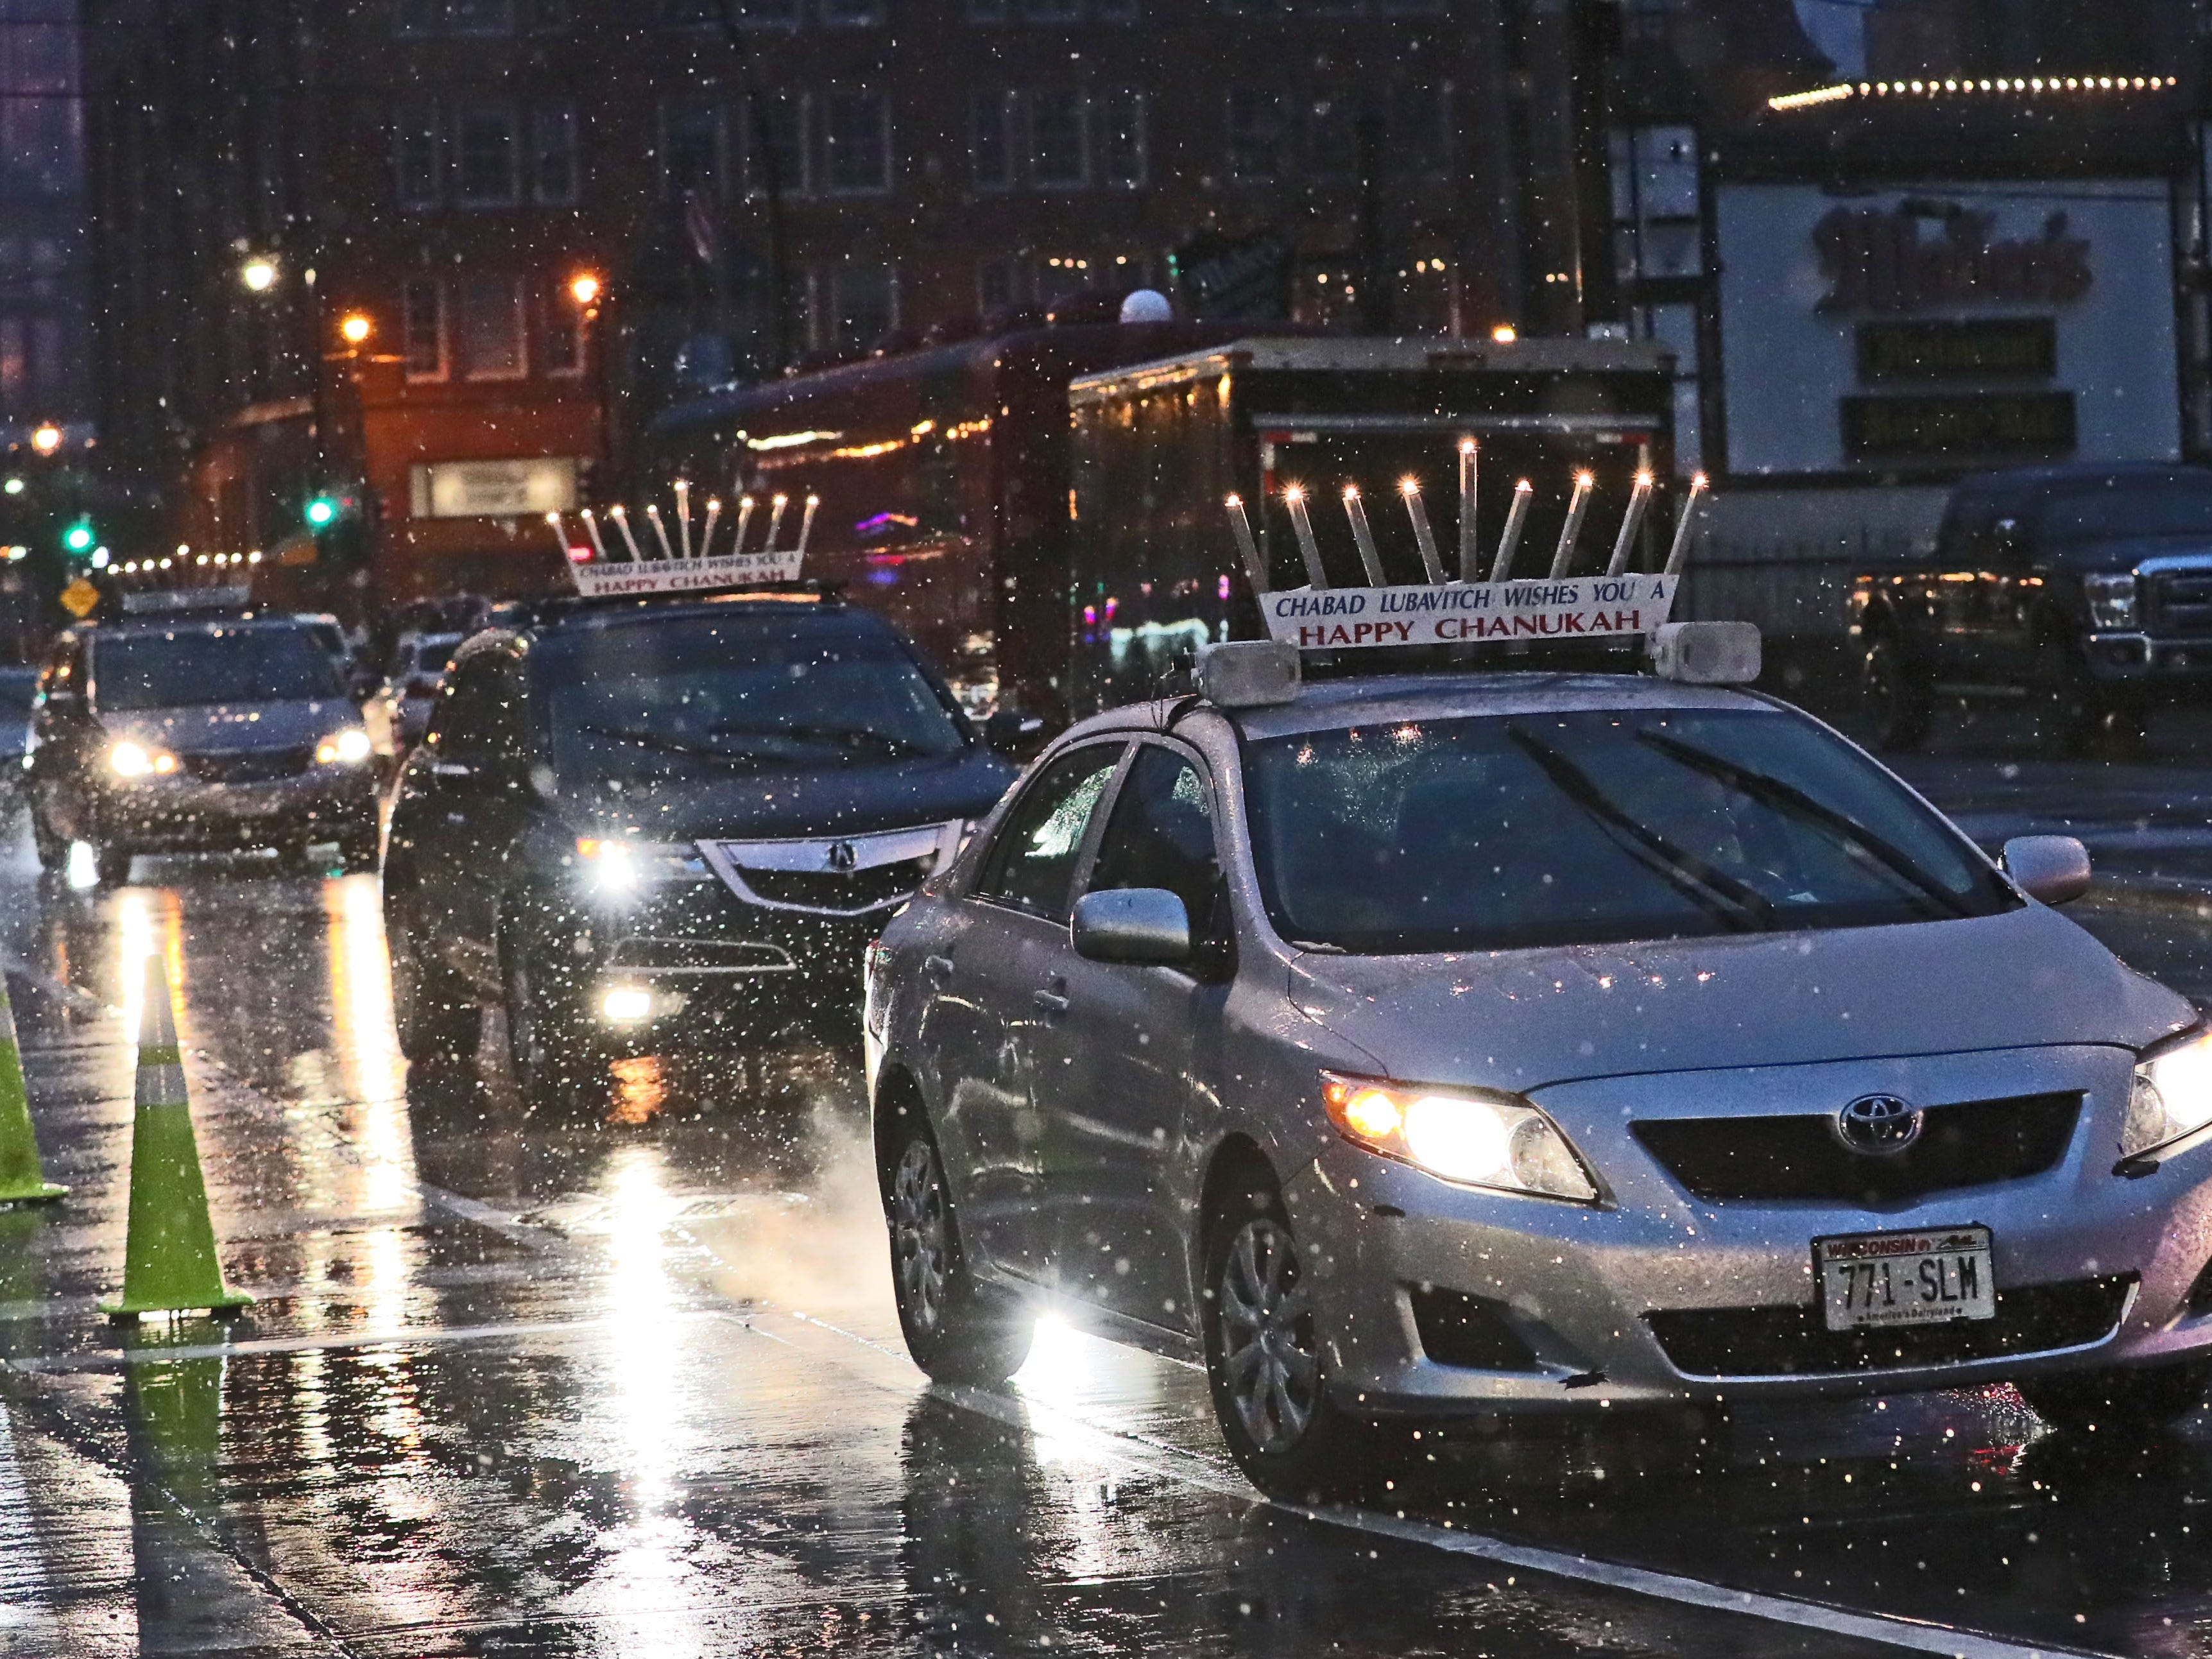 Cars with menorahs on their roofs  arrived at the event as part of the Great Menorah Parade Sunday.